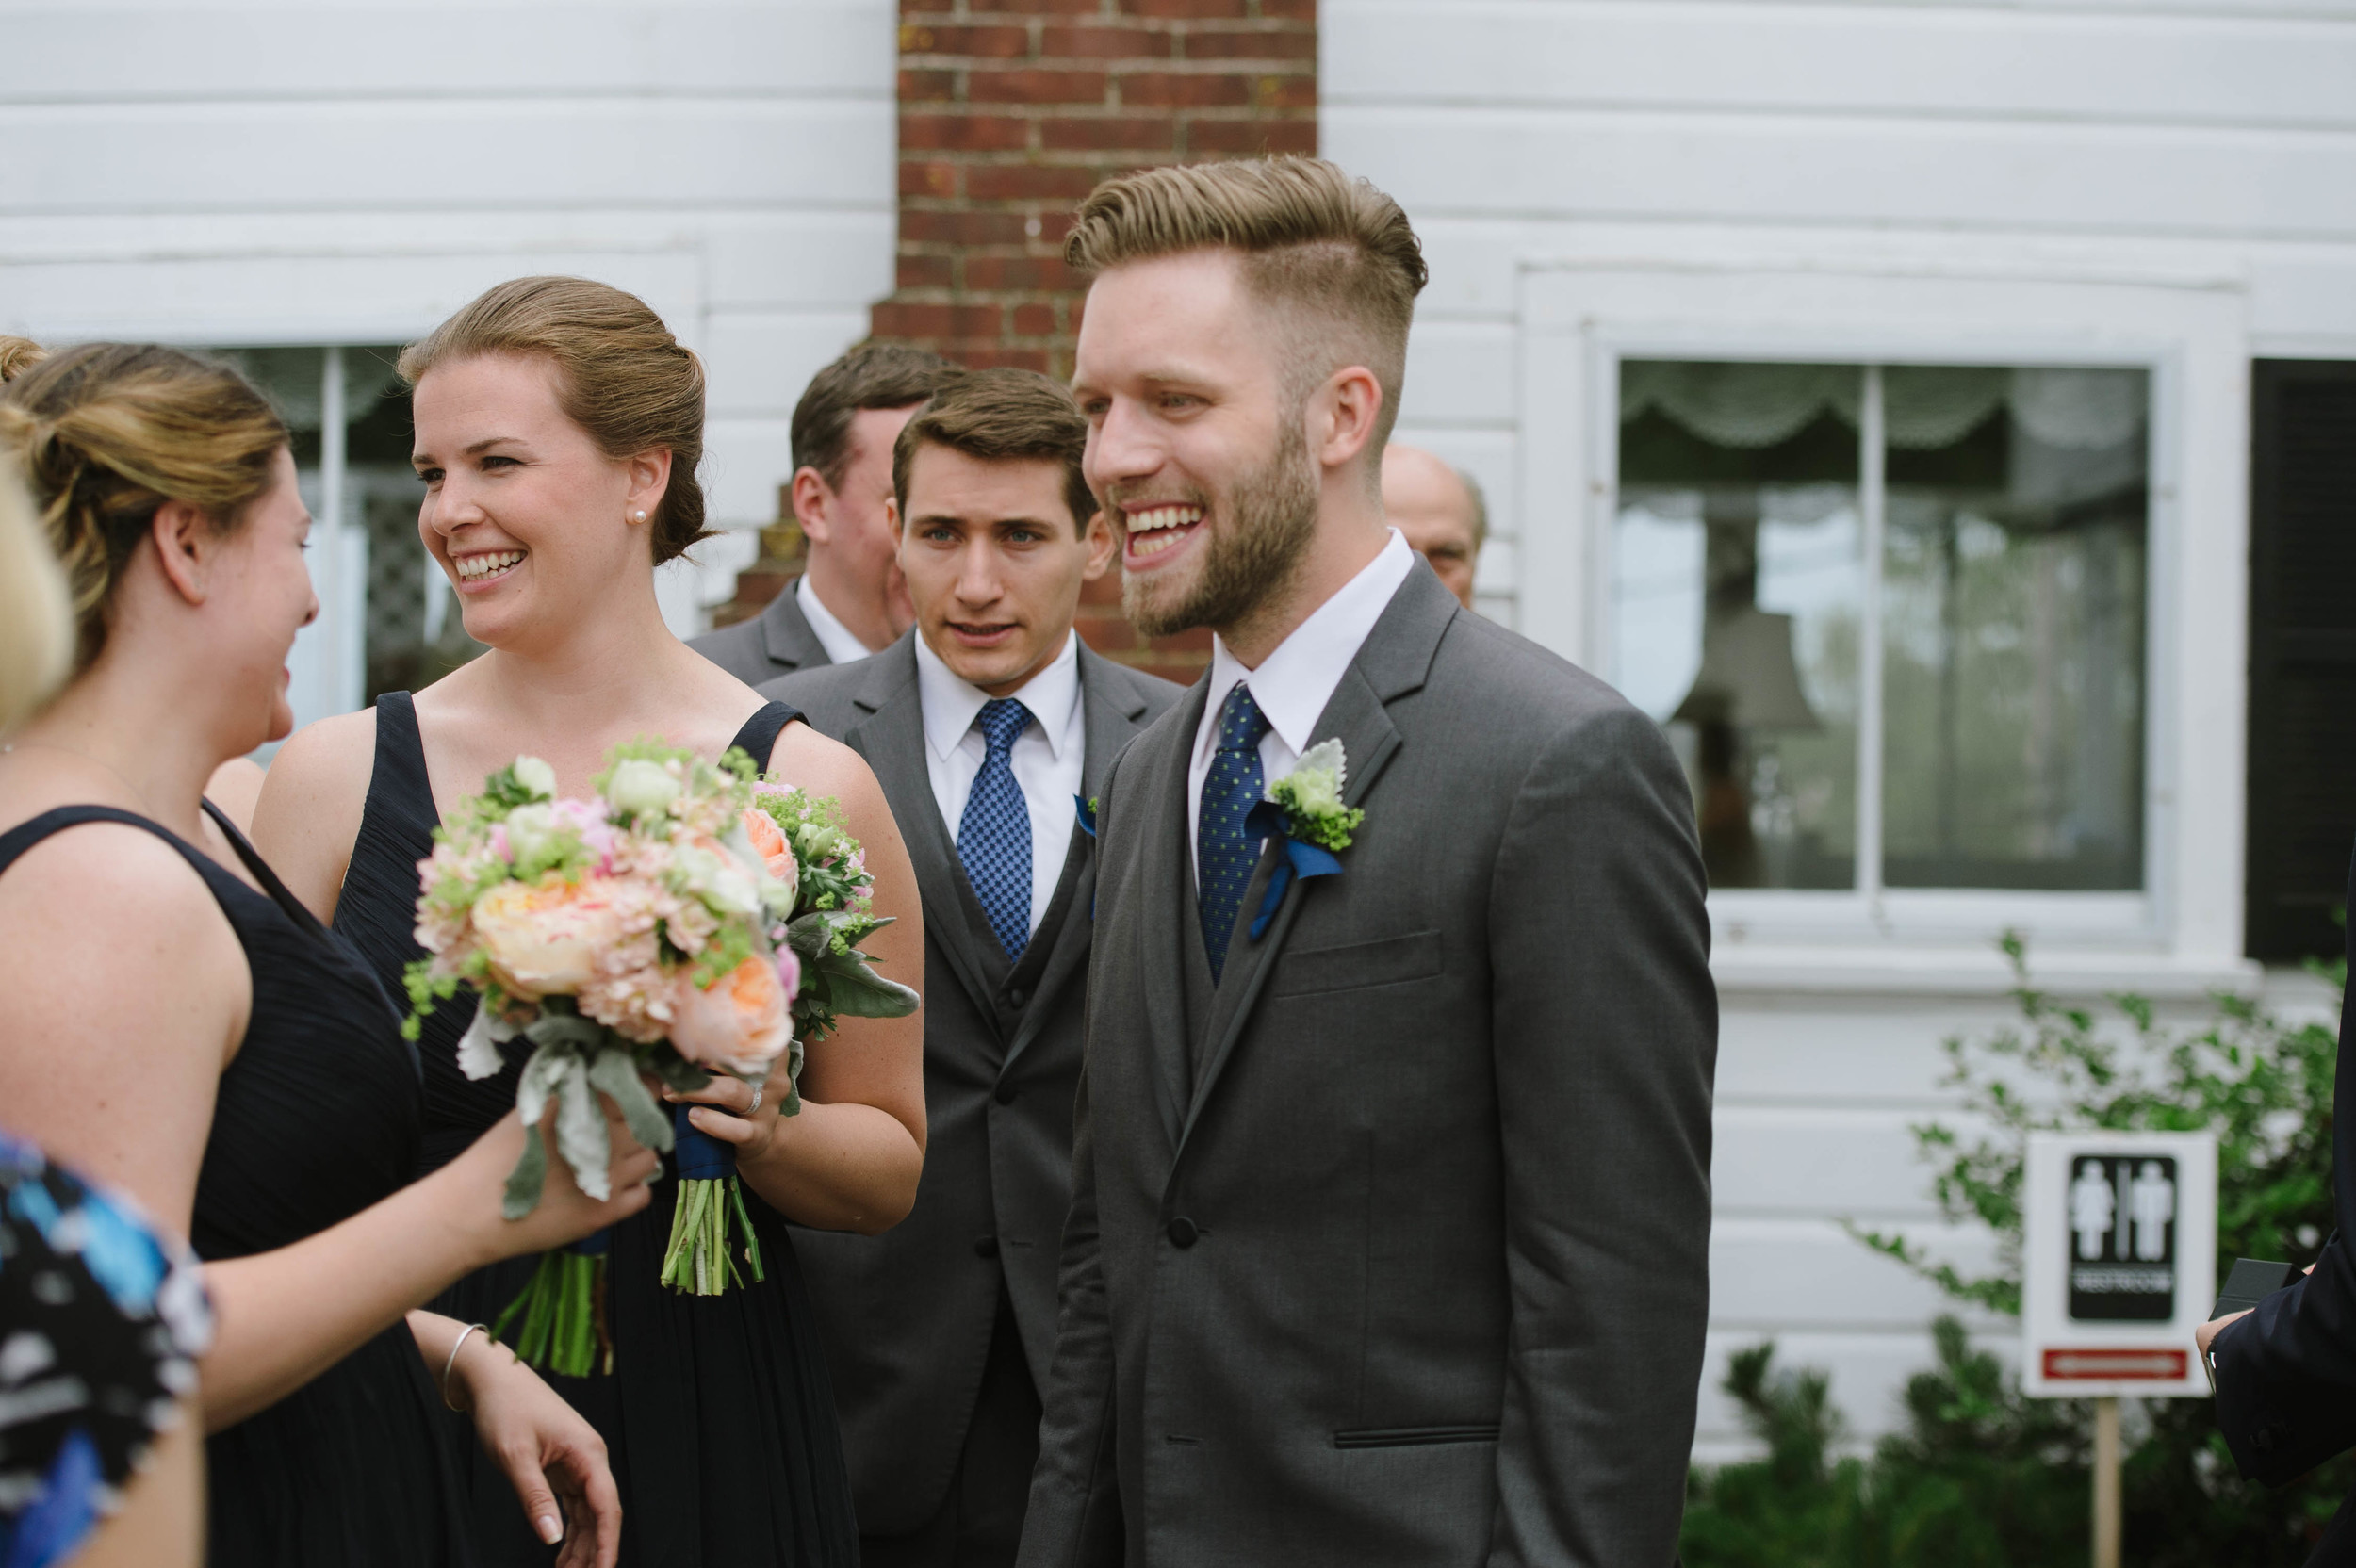 Holden_Inn_Wedding_Cape_Cod025.jpg